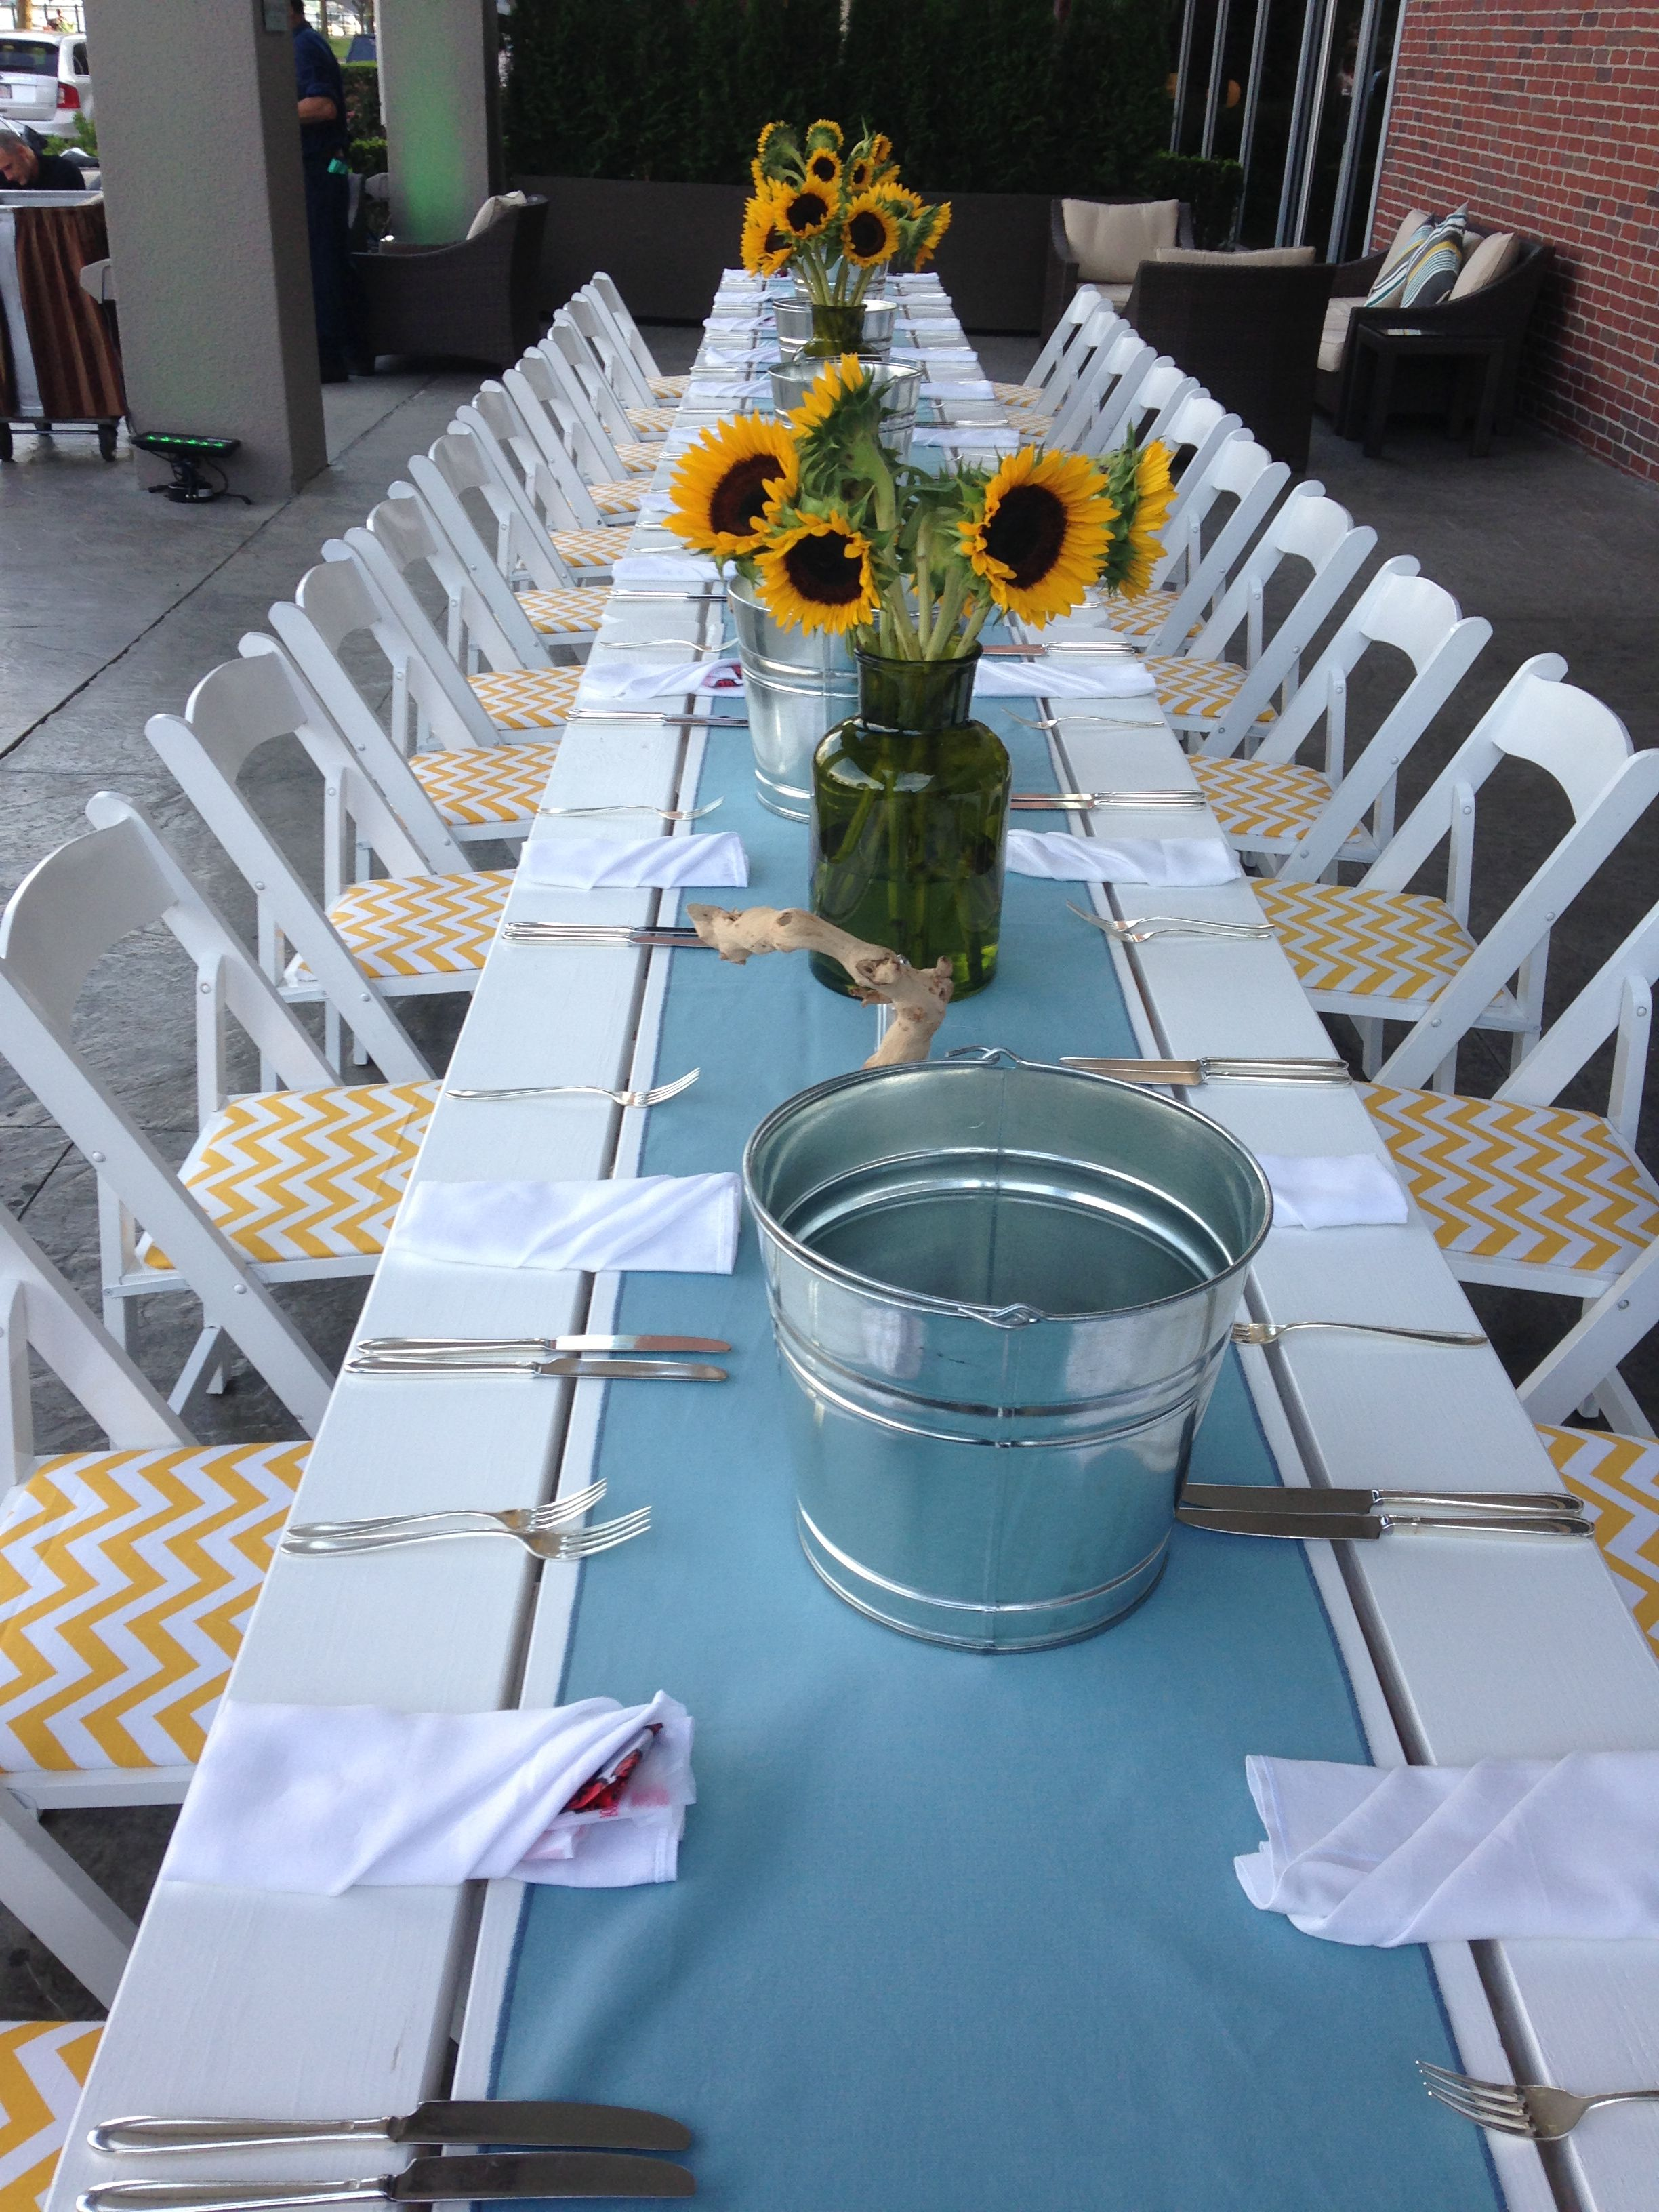 Clam bake decor the royal sonesta hotel boston offers for Terrace party decoration